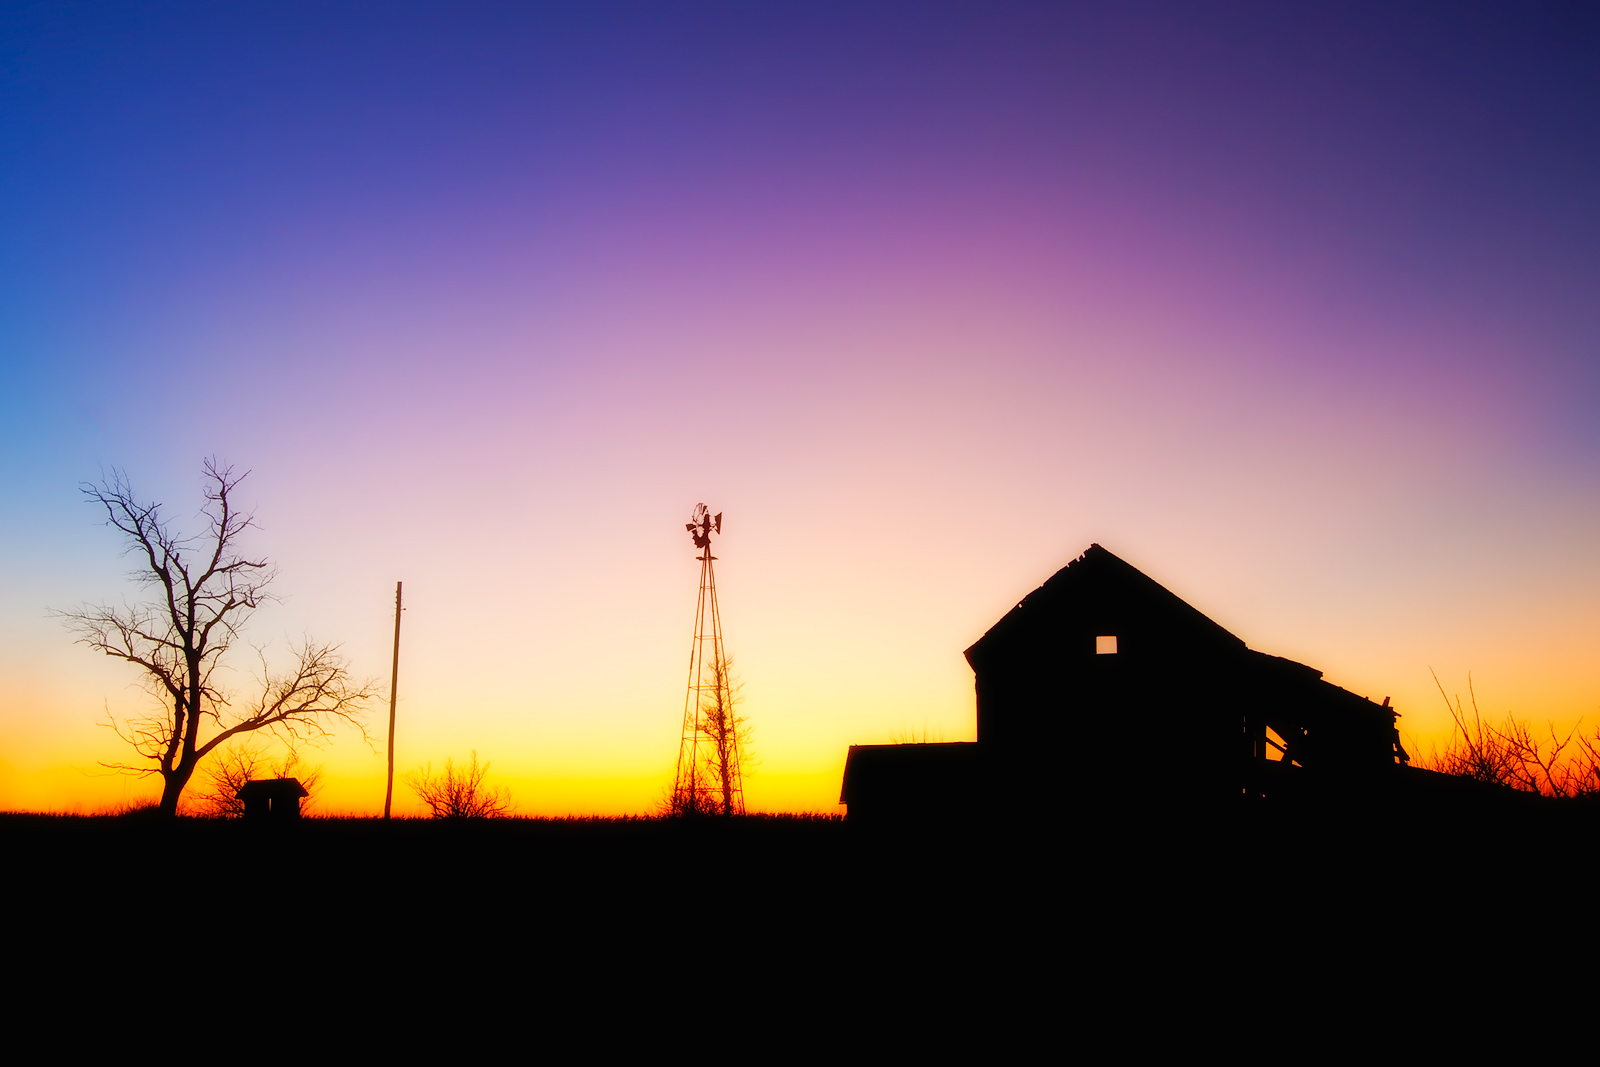 america,barn,beautiful,building,farm,highway 55,horizontal,il,illinois,midwest,mill,north america,rural,sun,sunset,twilight,united states,us,usa,windmill, photo